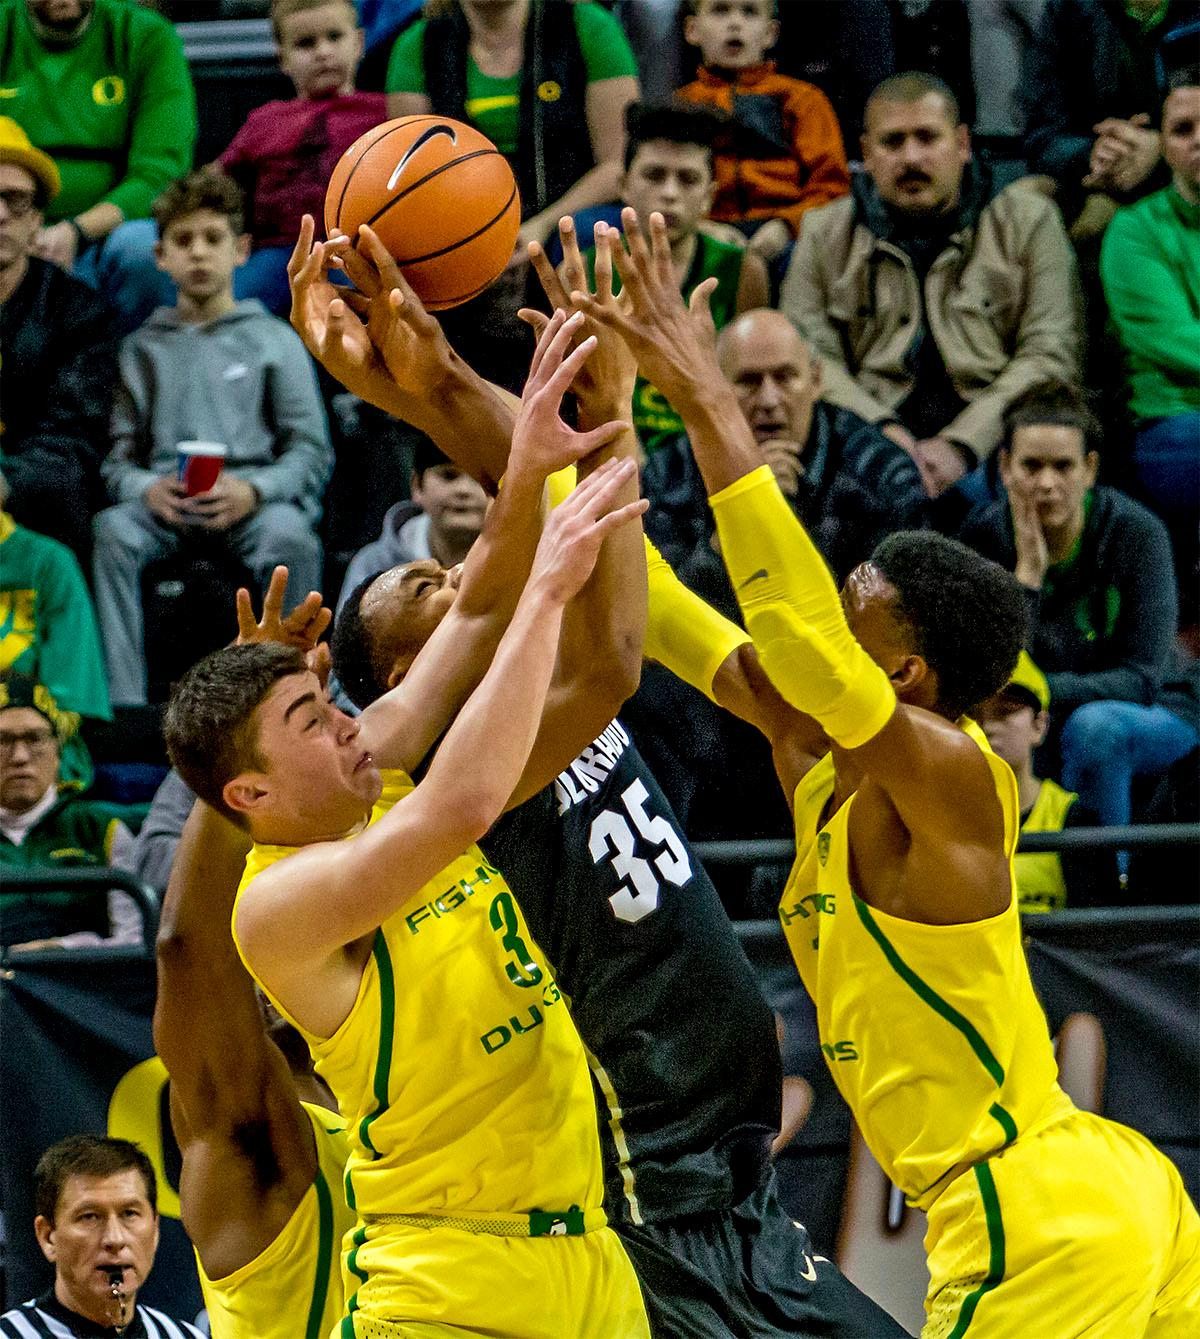 The Duck's fight with the Buffaloes' Dallas Walton (#35) for the rebound. The Oregon Ducks defeated the Colorado Buffaloes 77-62 at Matthew Knight Arena on Sunday. Troy Brown had a season-high score of 21 points, Elijah Brown added 17, while Kenny Wooten and Payton Pritchard added 13 and 12 respectively. Oregon is now 1-1 in conference play. The Ducks next face off against the Oregon State Beavers in Corvallis on Friday, January 5th. Photo by August Frank, Oregon News Lab